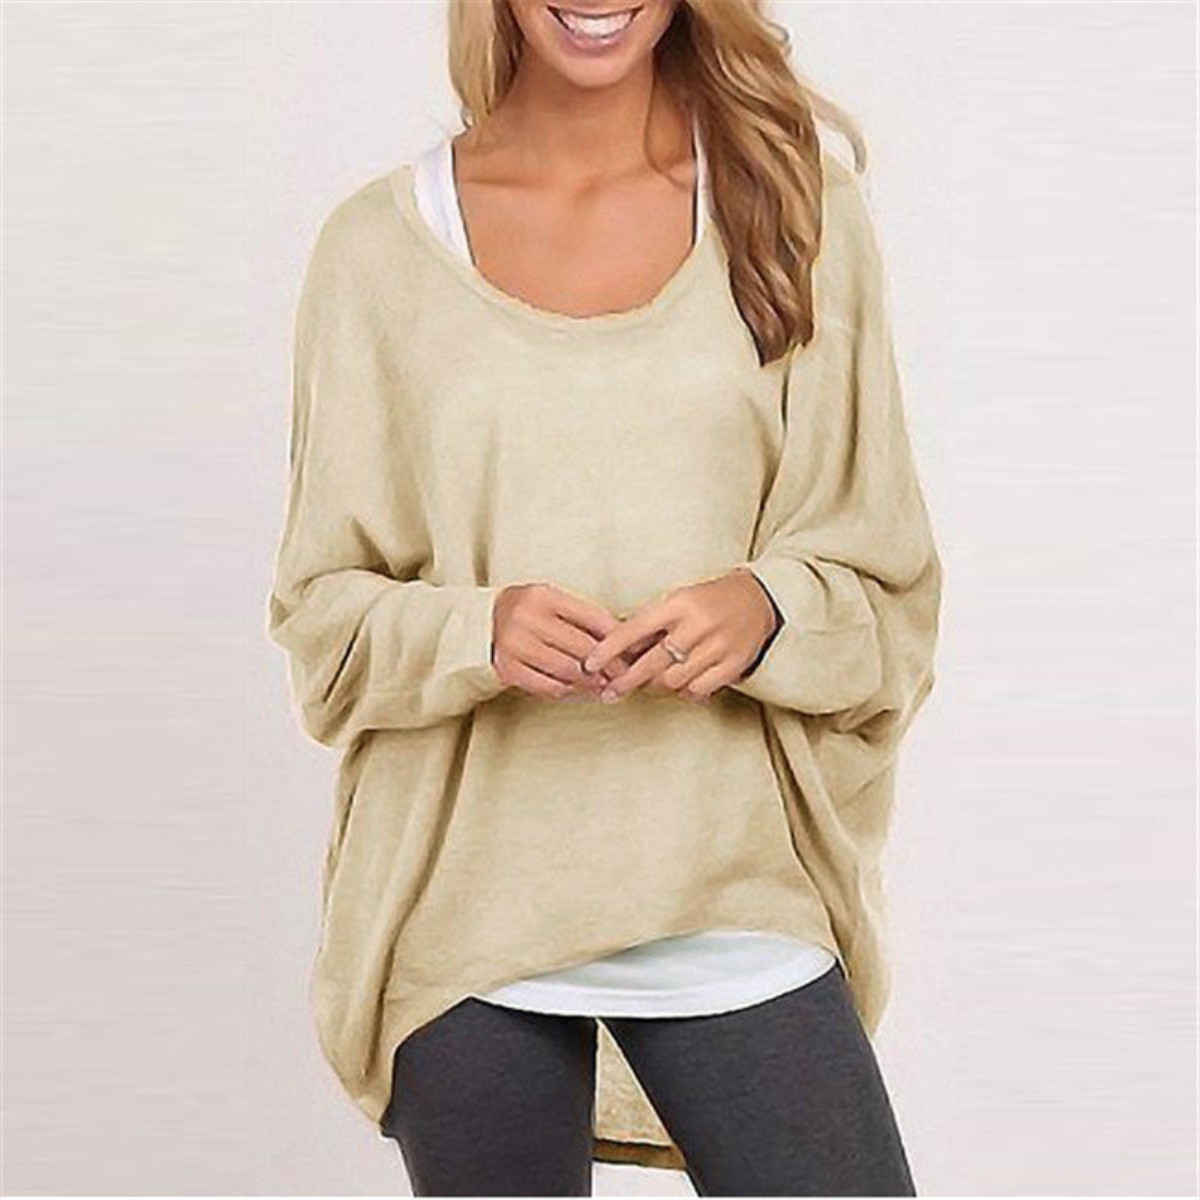 Fashion Spring Autumn Women Blouse Batwing Long Sleeve Casual Loose Solid Top Shirt Sweater Plus Size Blusas Femininas 9 Colors